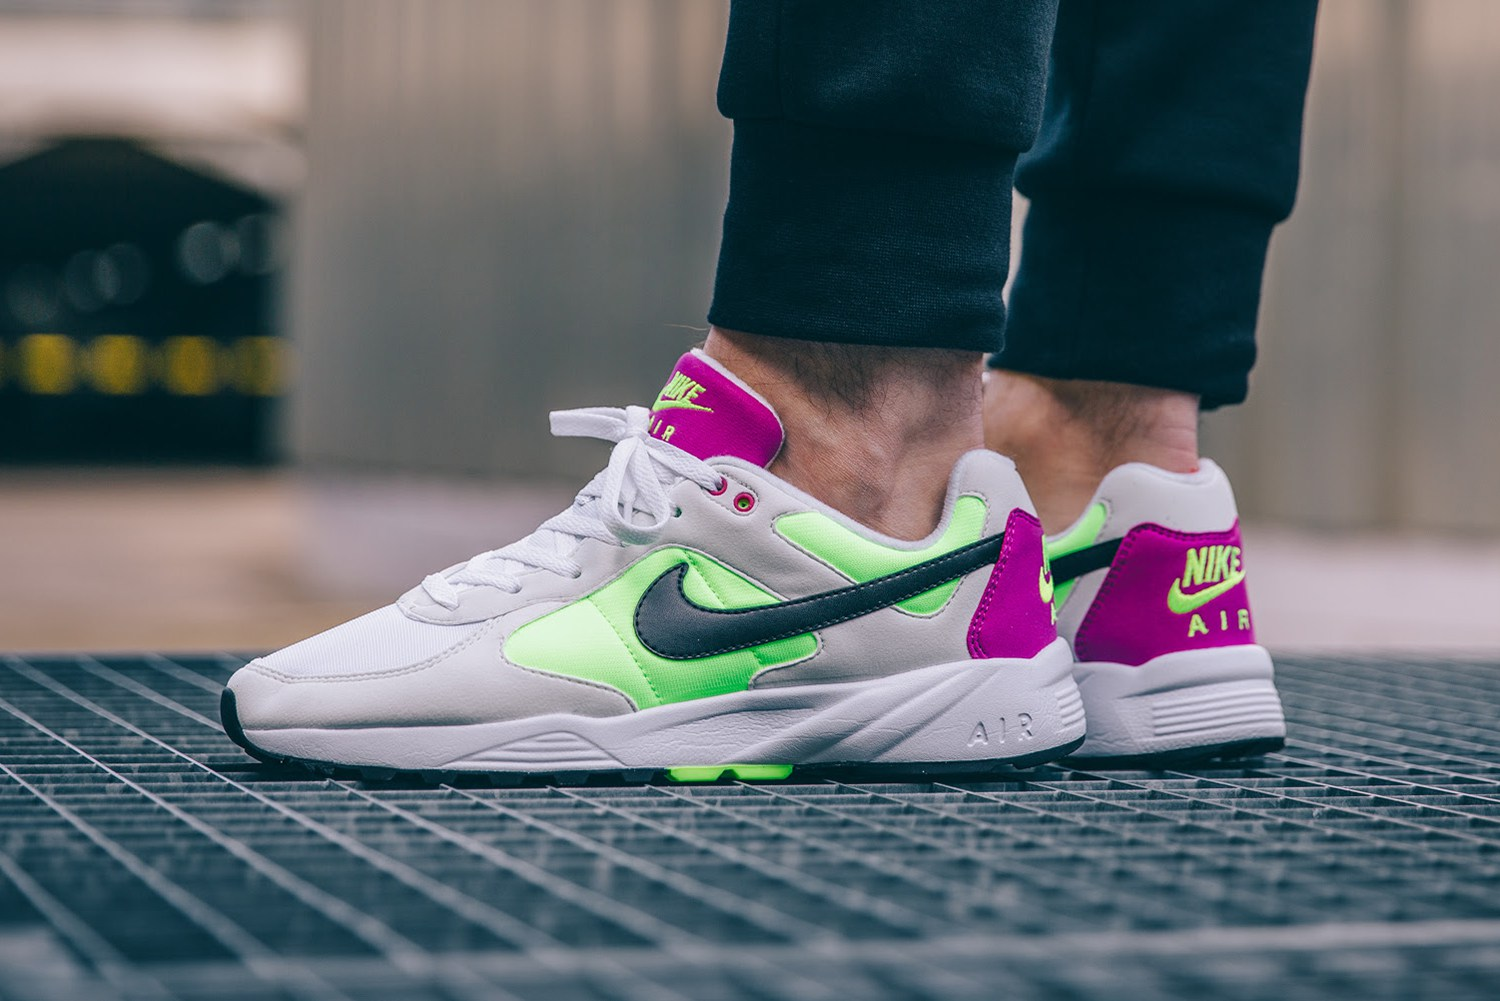 http://www.modern-notoriety.com/wp-content/uploads/2016/02/nike-air-icarus-summit-white-black-volt-fuchsia-flash-1.jpg